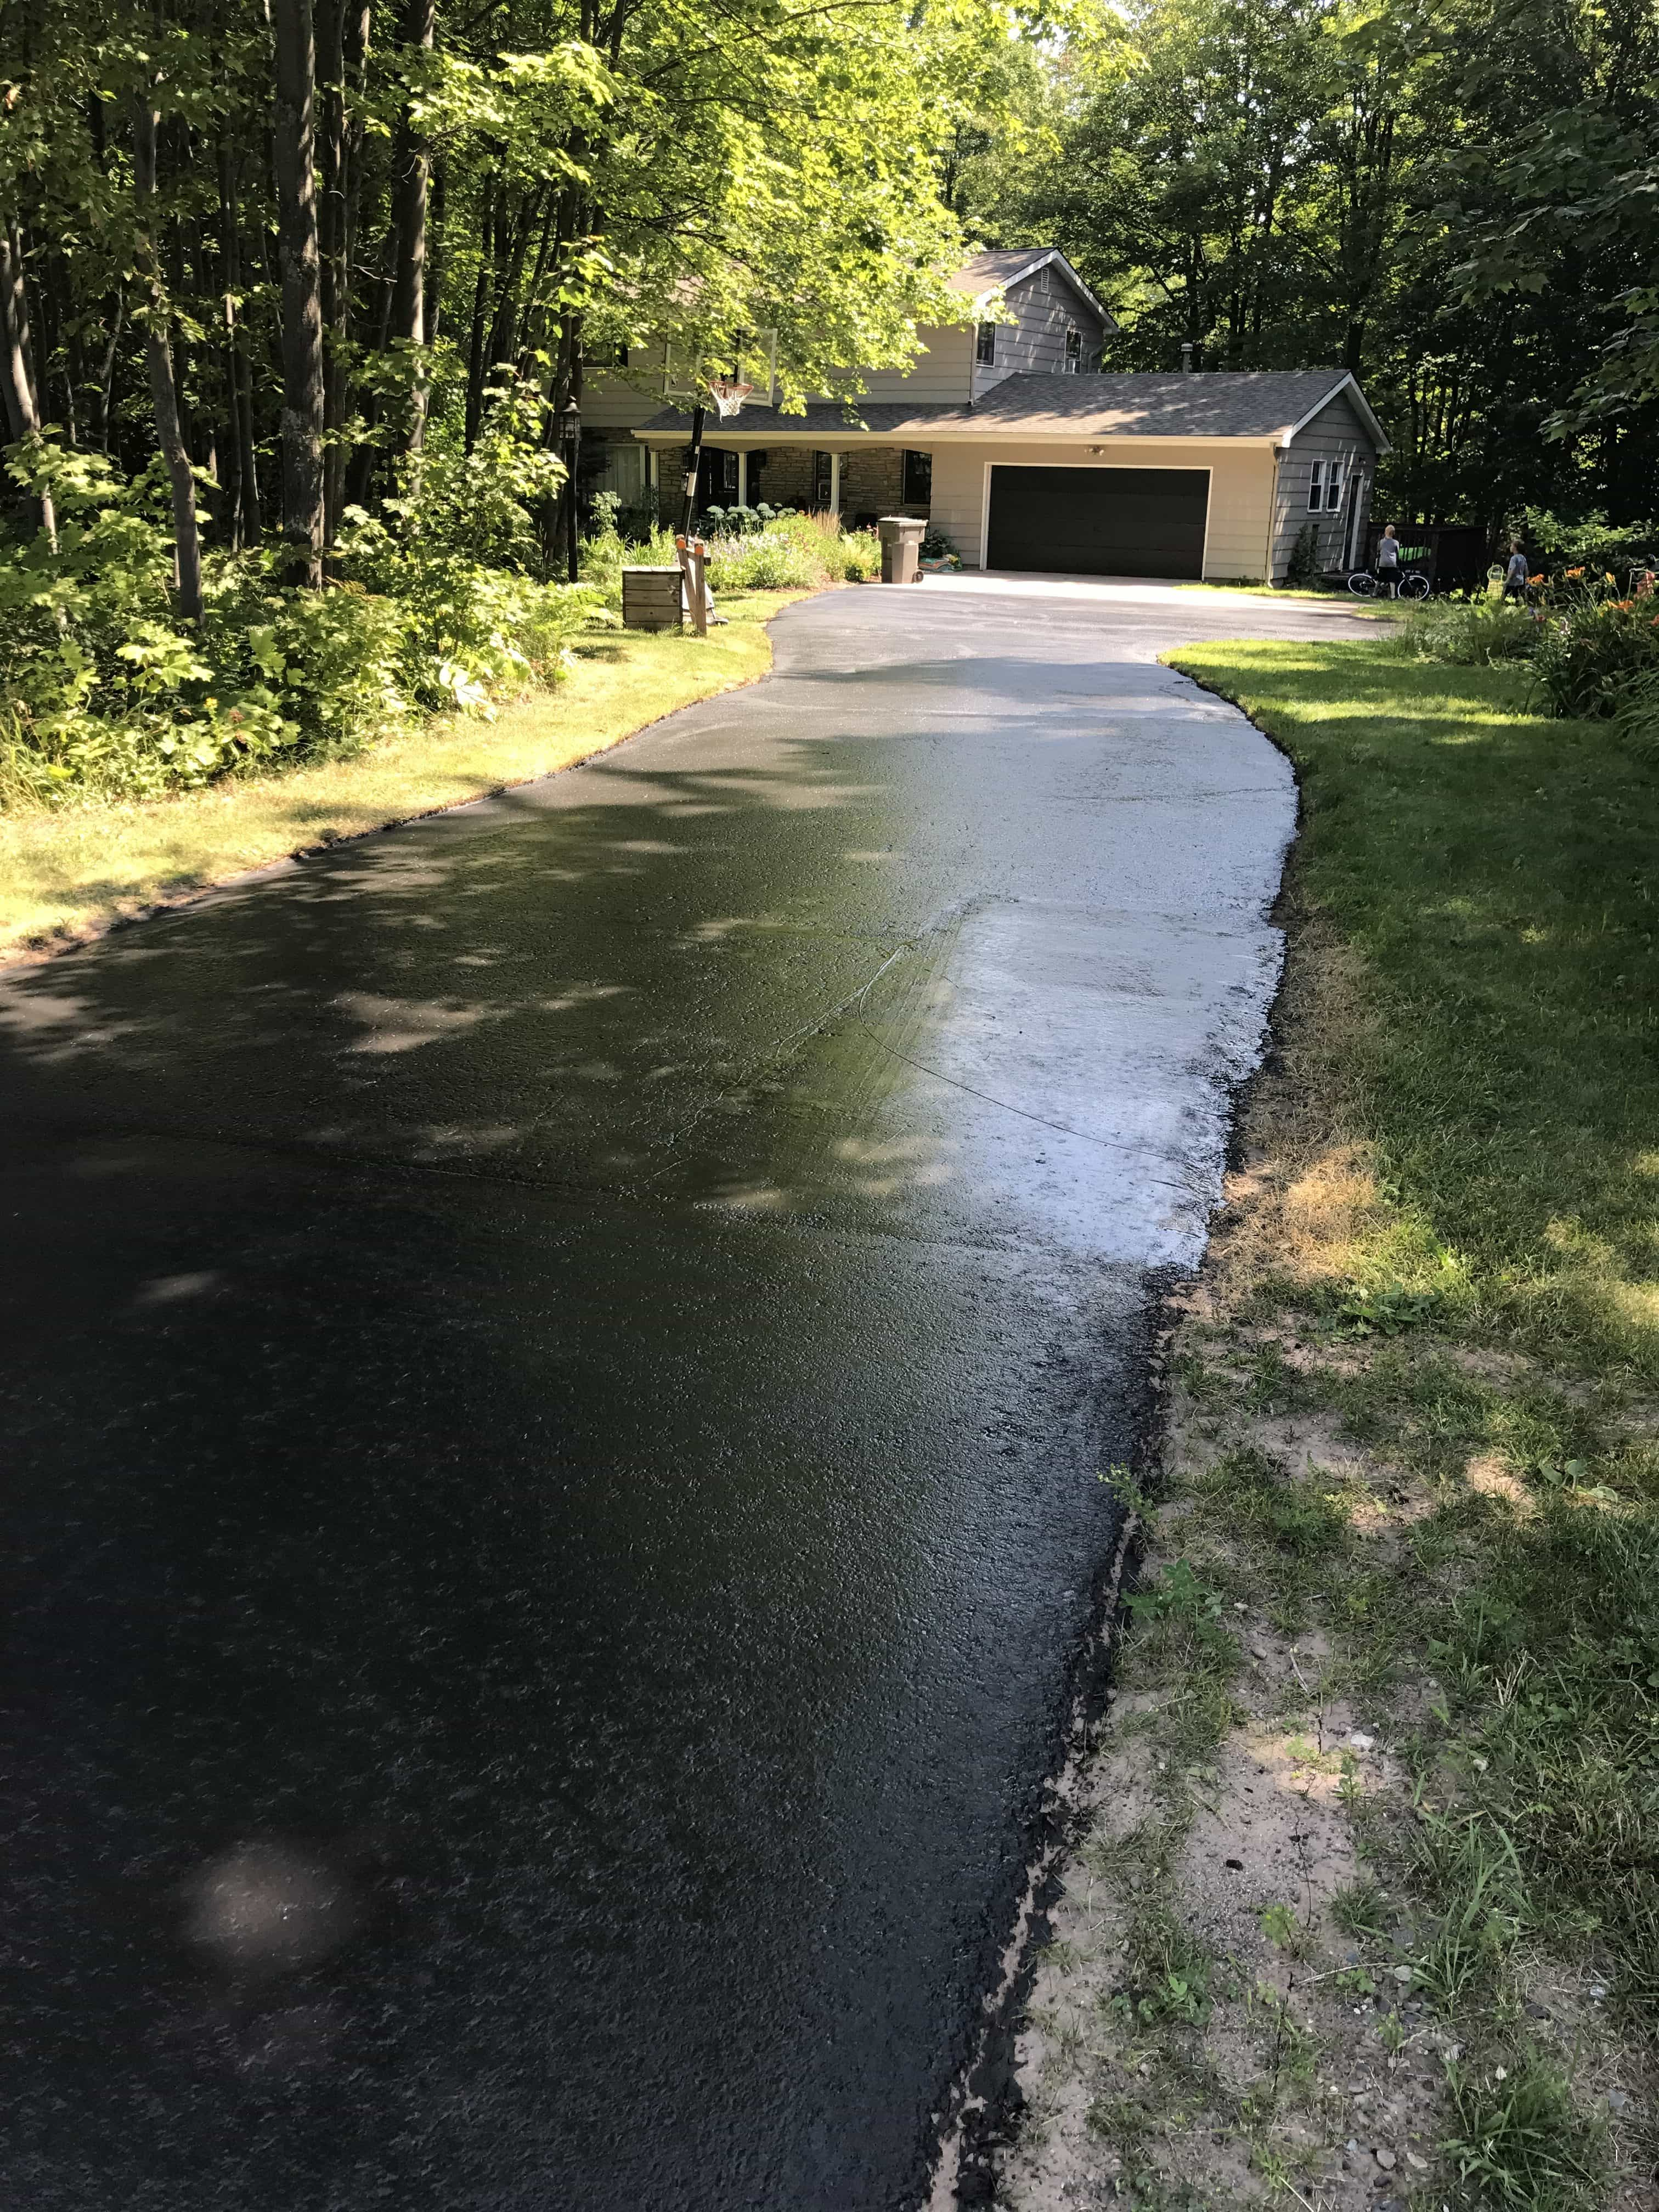 How to save money on driveway